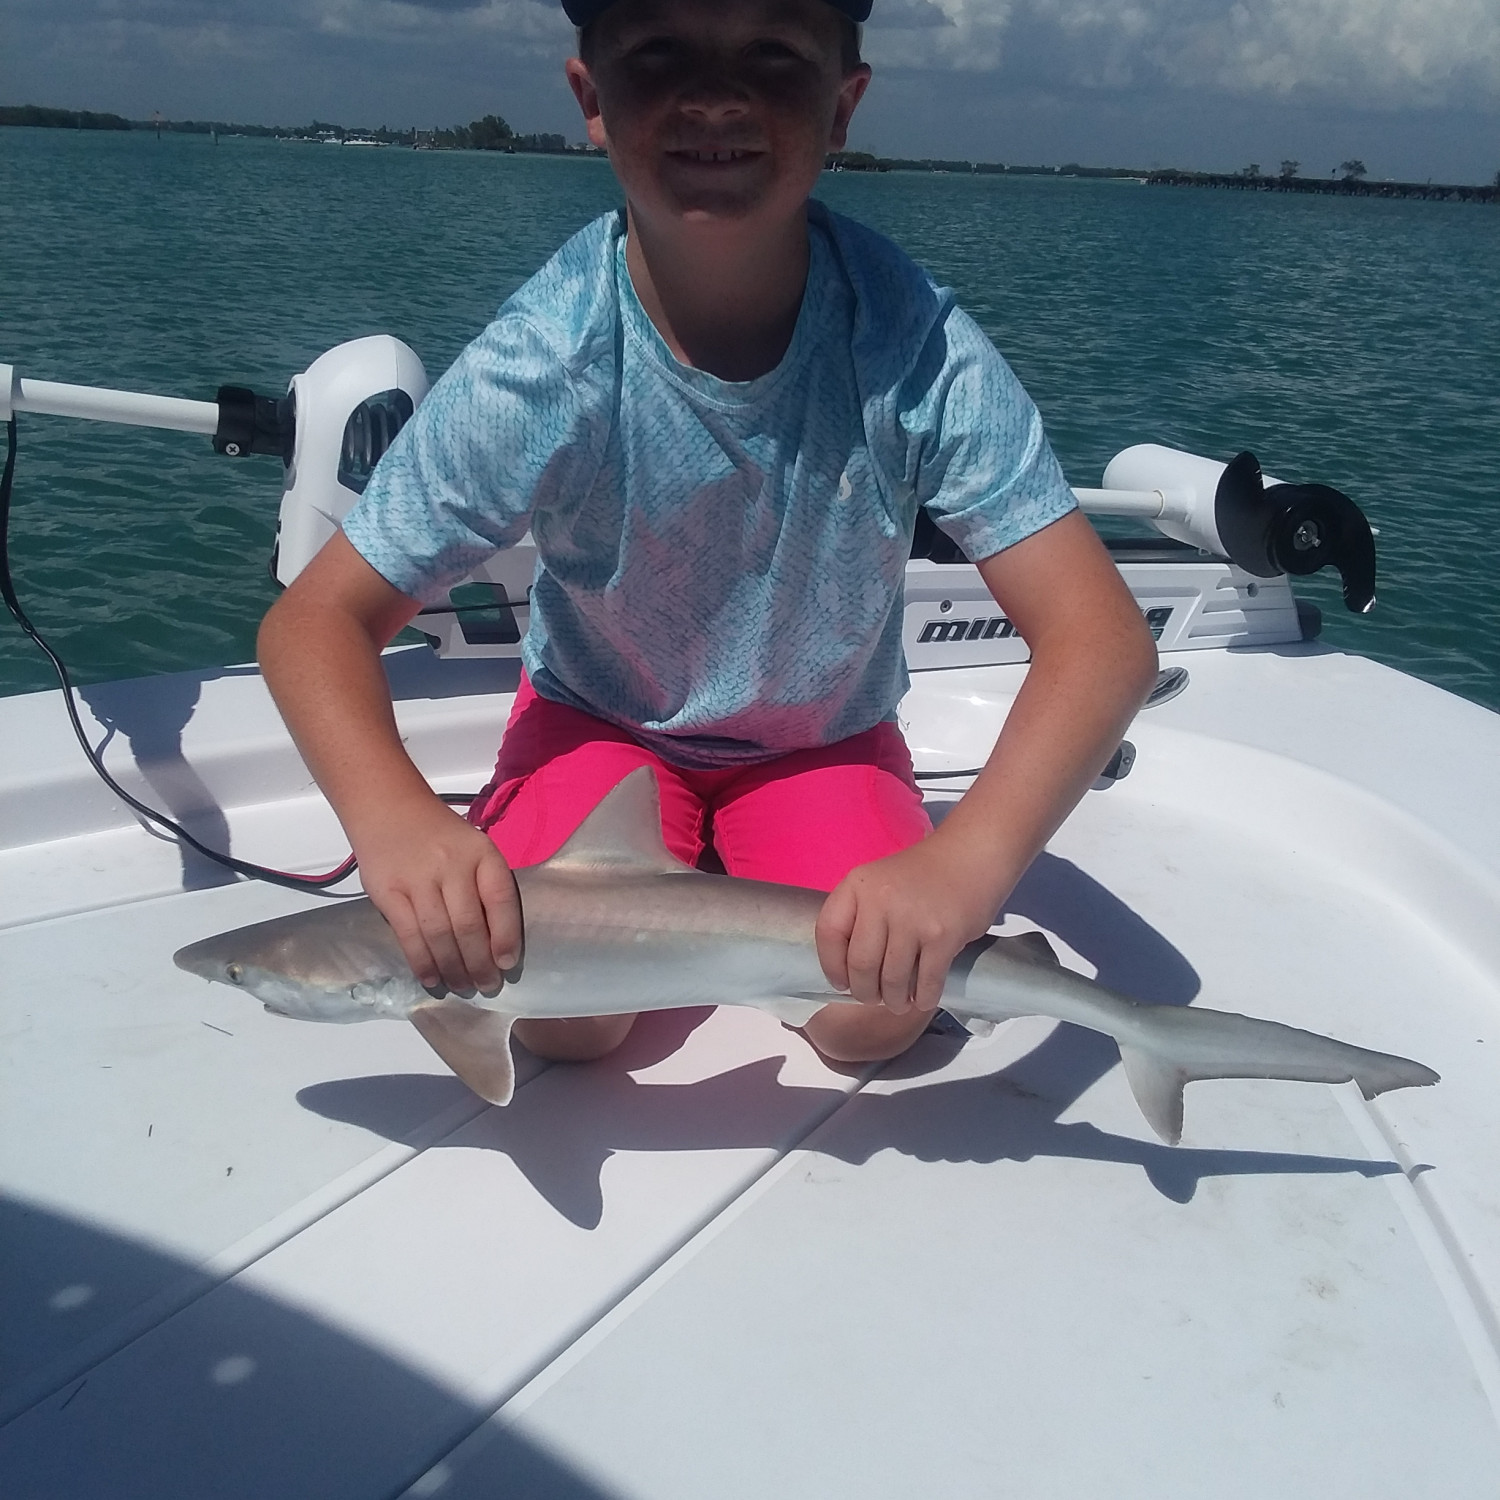 Title: Caught a shark - On board their Sportsman Island Bay 20 Bay Boat - Location: Gasparilla, Fl. Participating in the Photo Contest #SportsmanMay2018